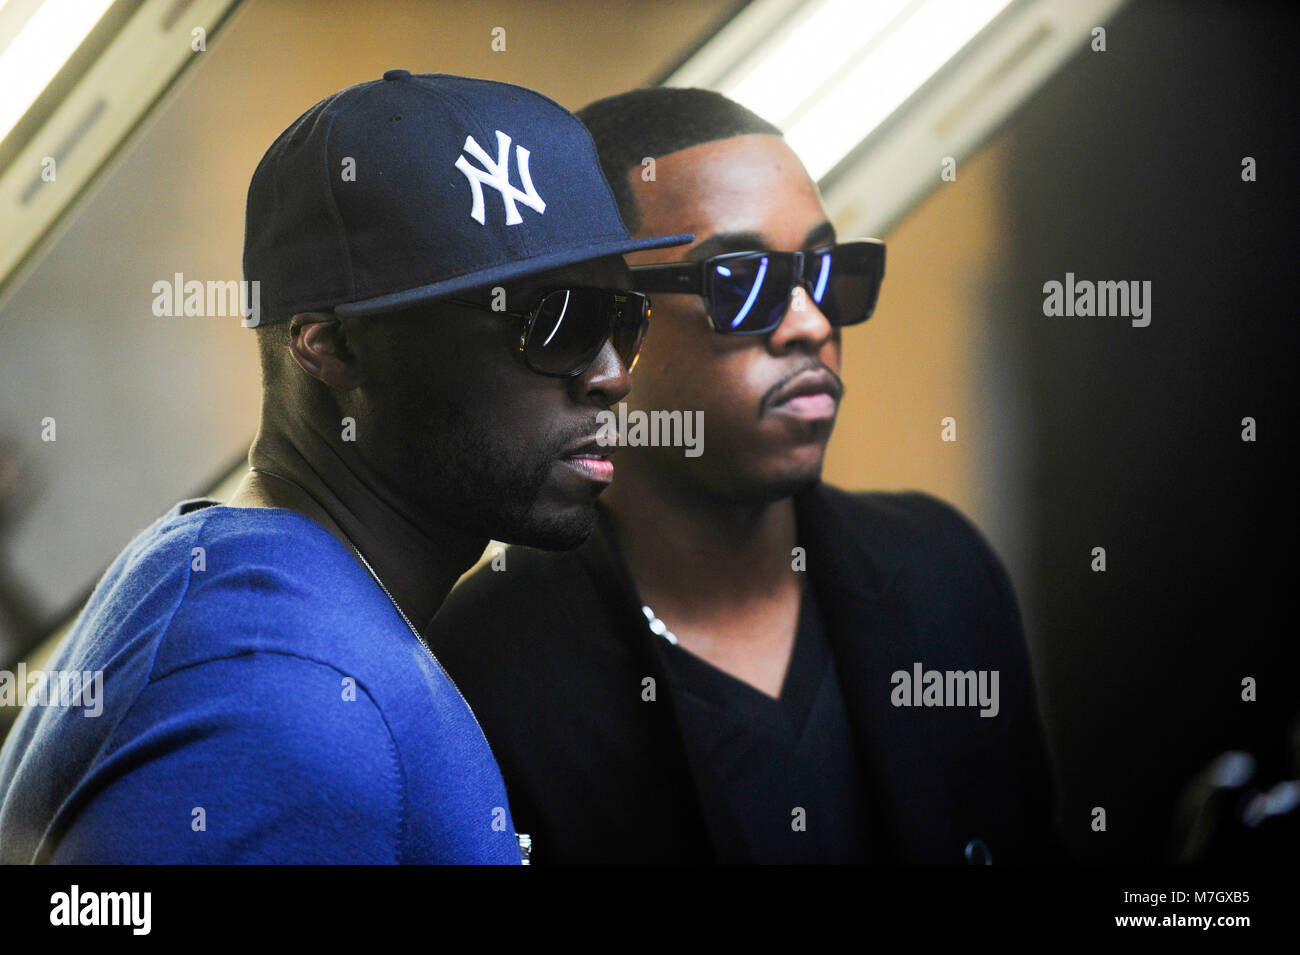 L-R) 50 Cent and Jeremih on-set at the Jeremih featuring 50